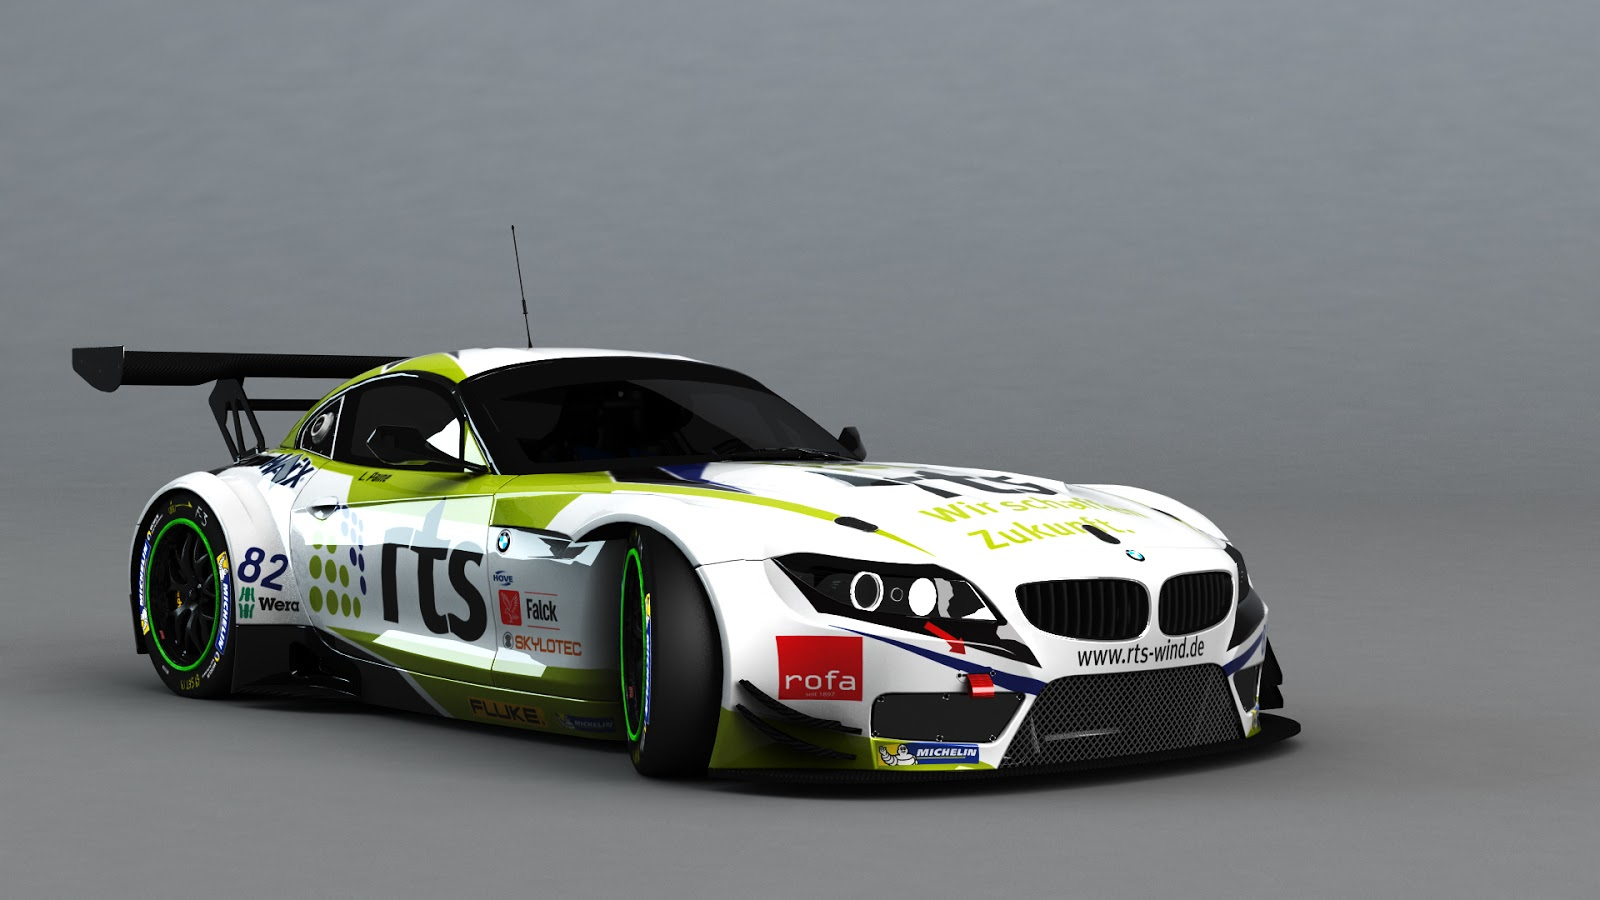 bmw z4 gt3 rts wind ag racedepartment. Black Bedroom Furniture Sets. Home Design Ideas